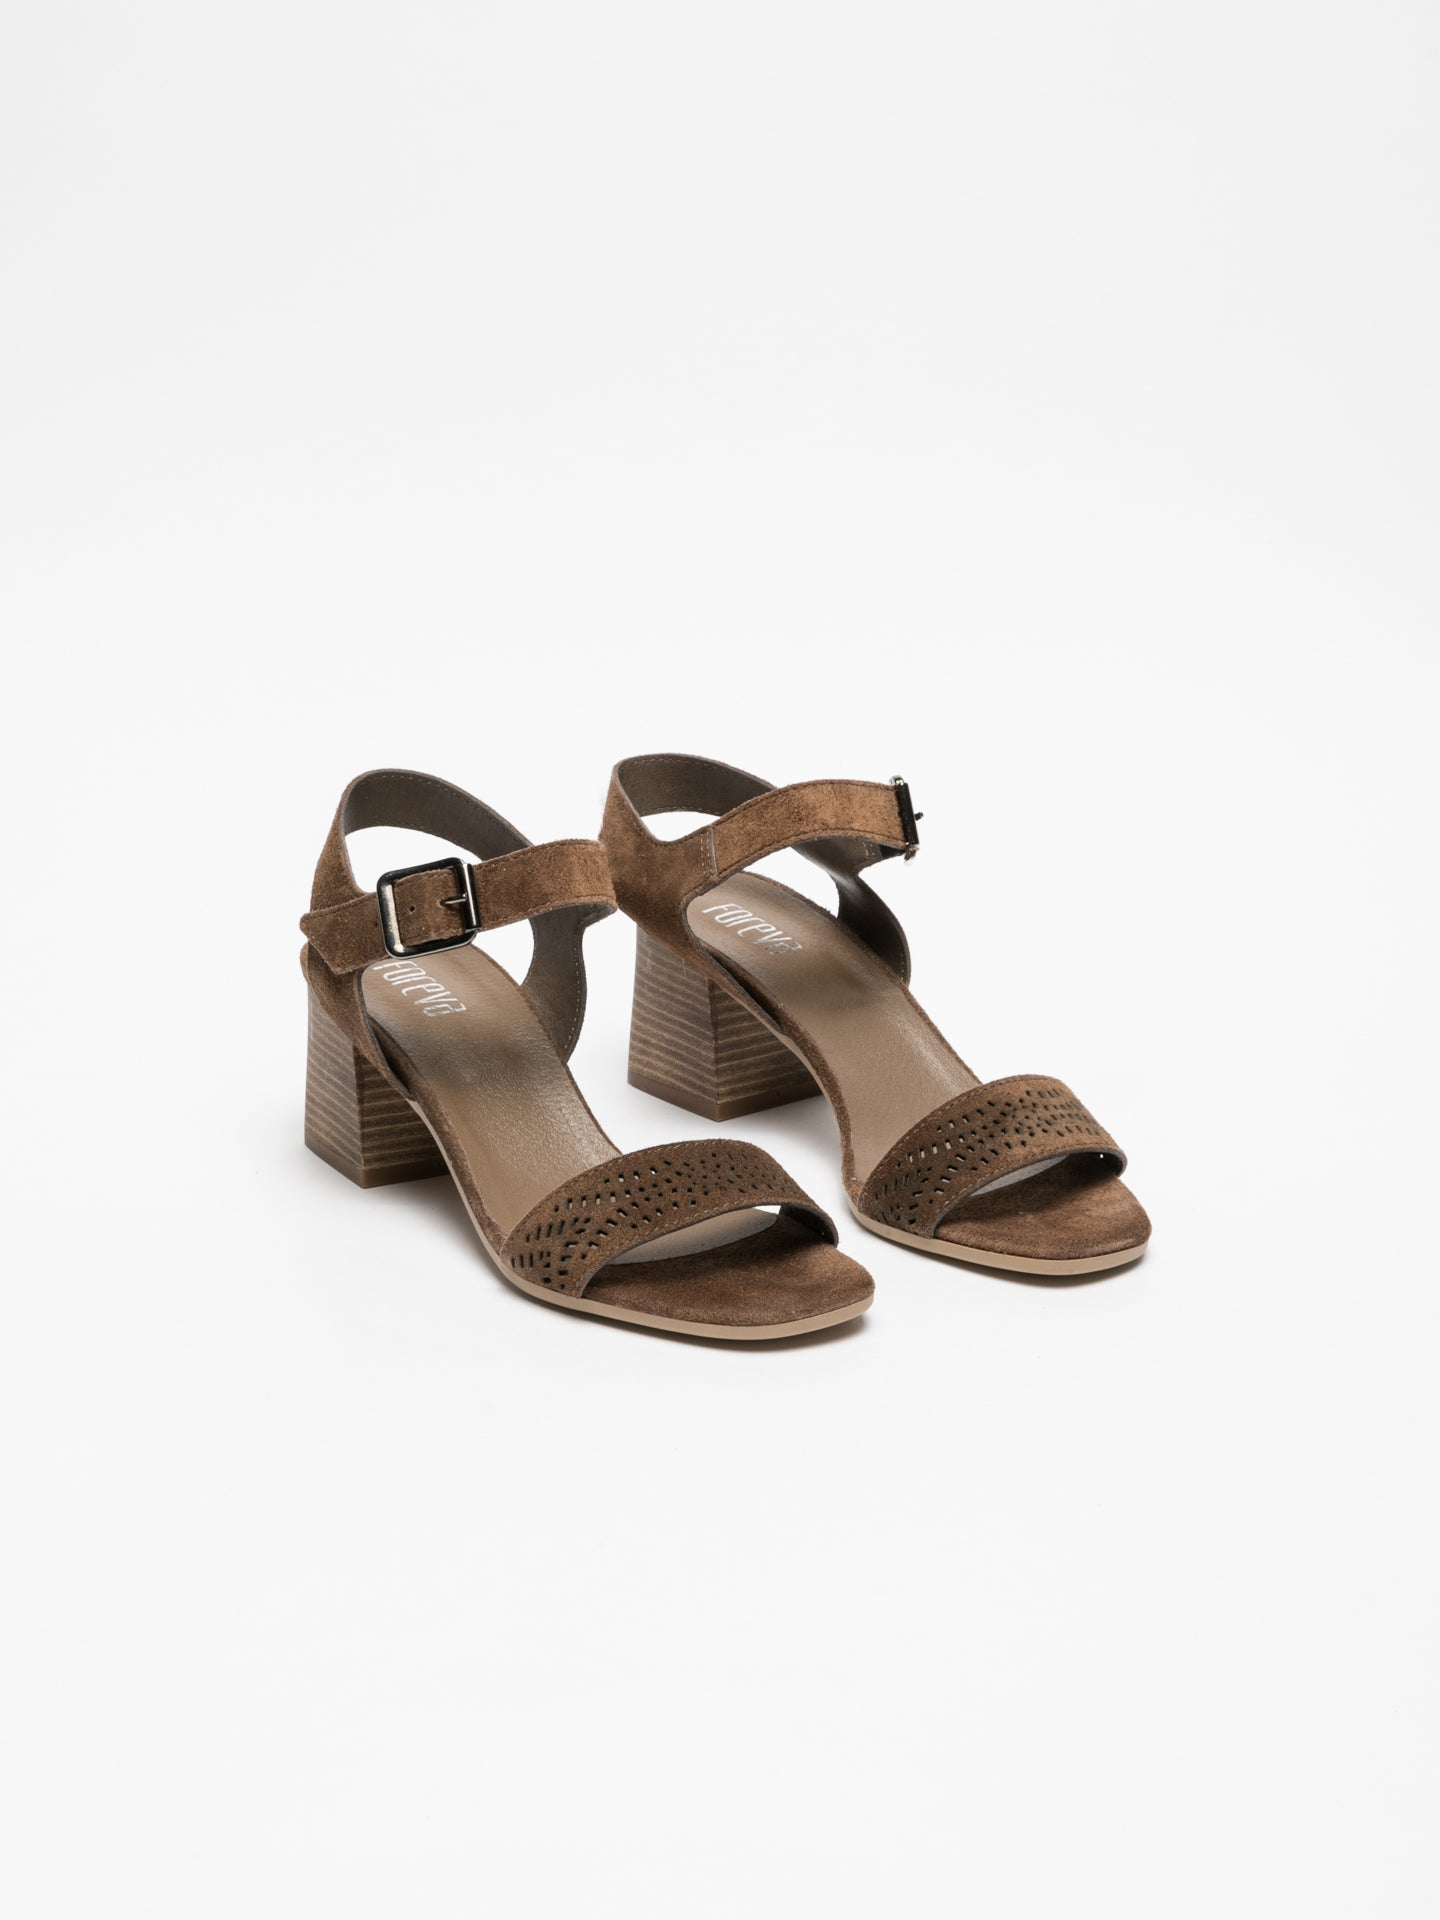 Foreva Brown Buckle Sandals